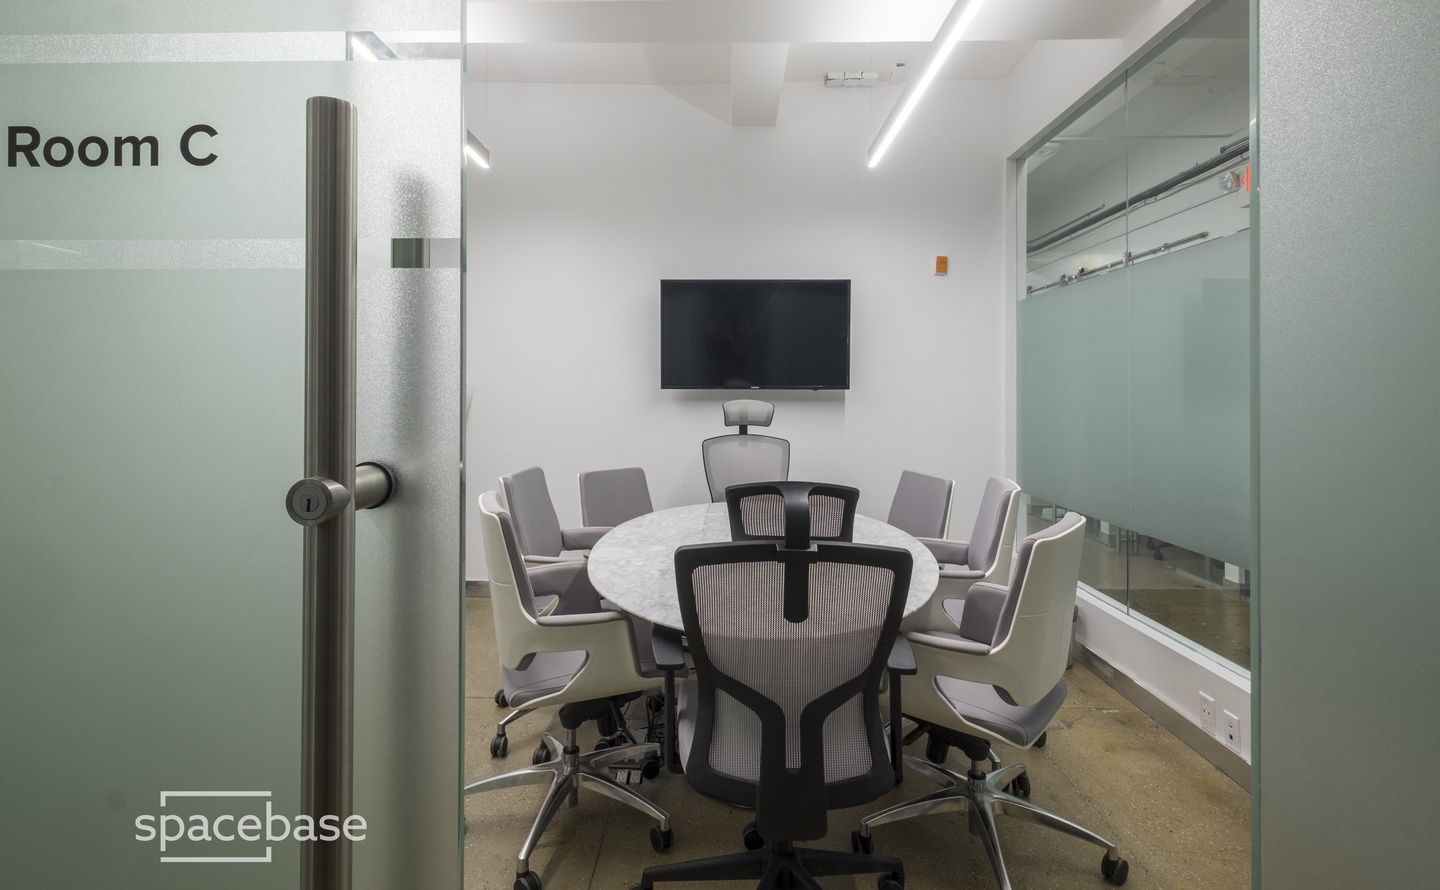 NYC conference rooms Salle de réunion WorkVille Conference Room C image 2